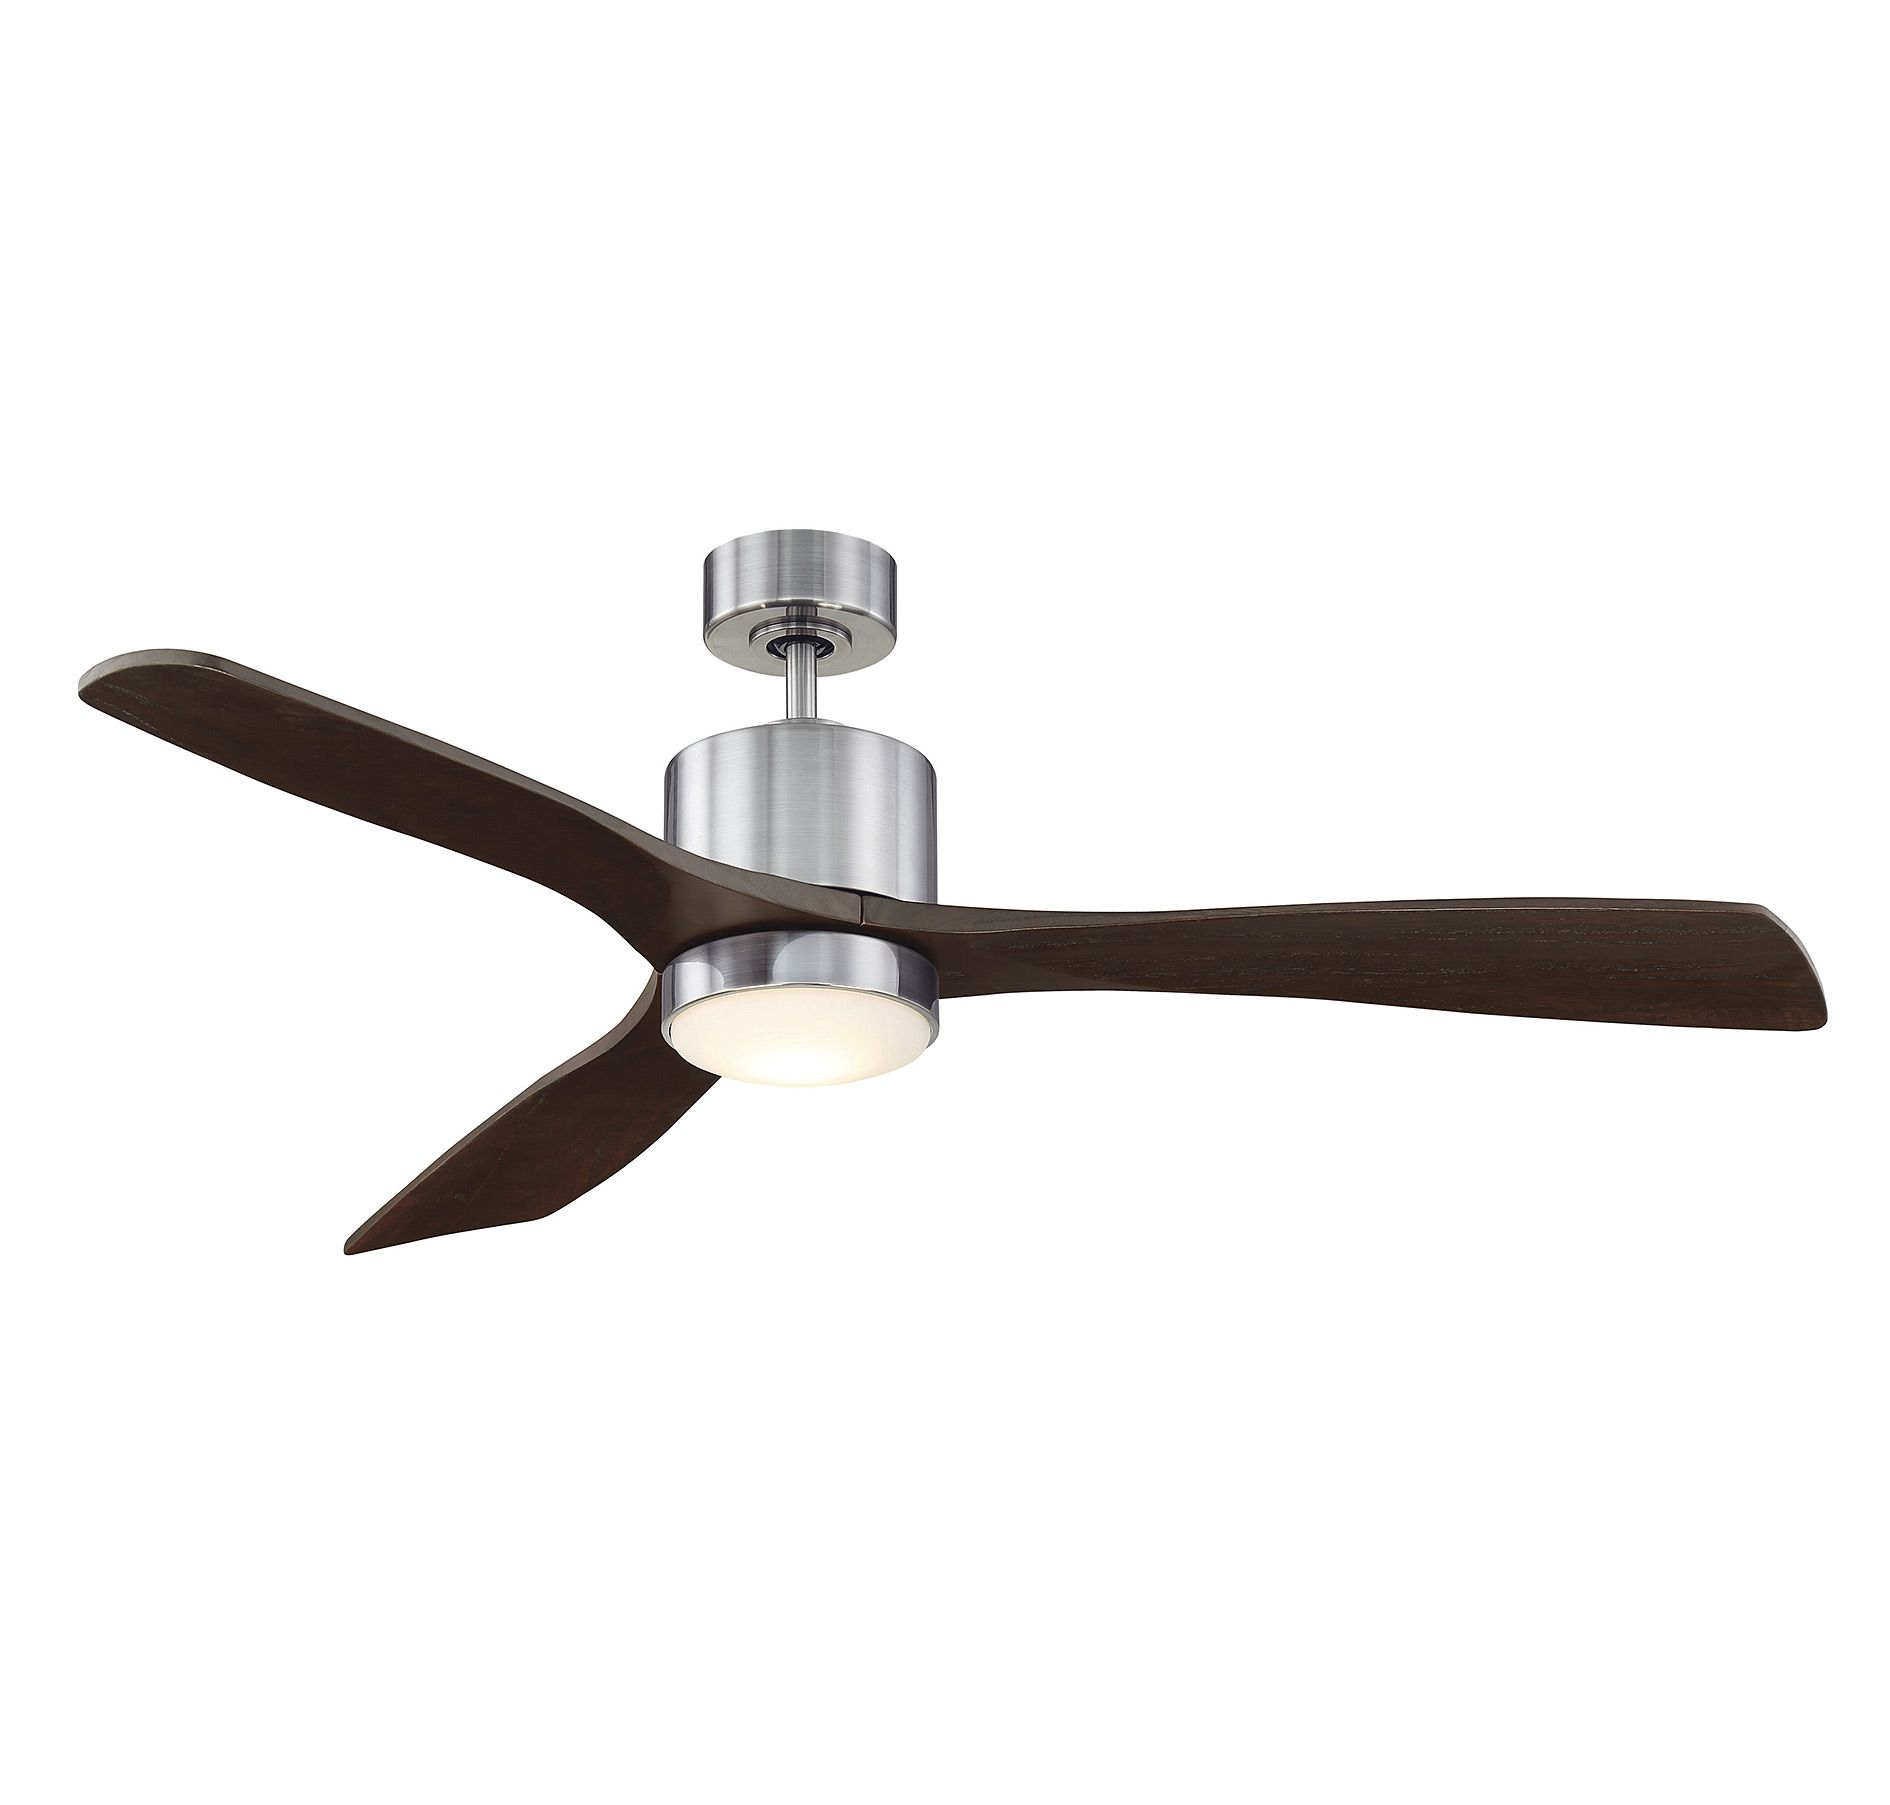 Amherst Ceiling Fan with Light features a Brushed Pewter motor